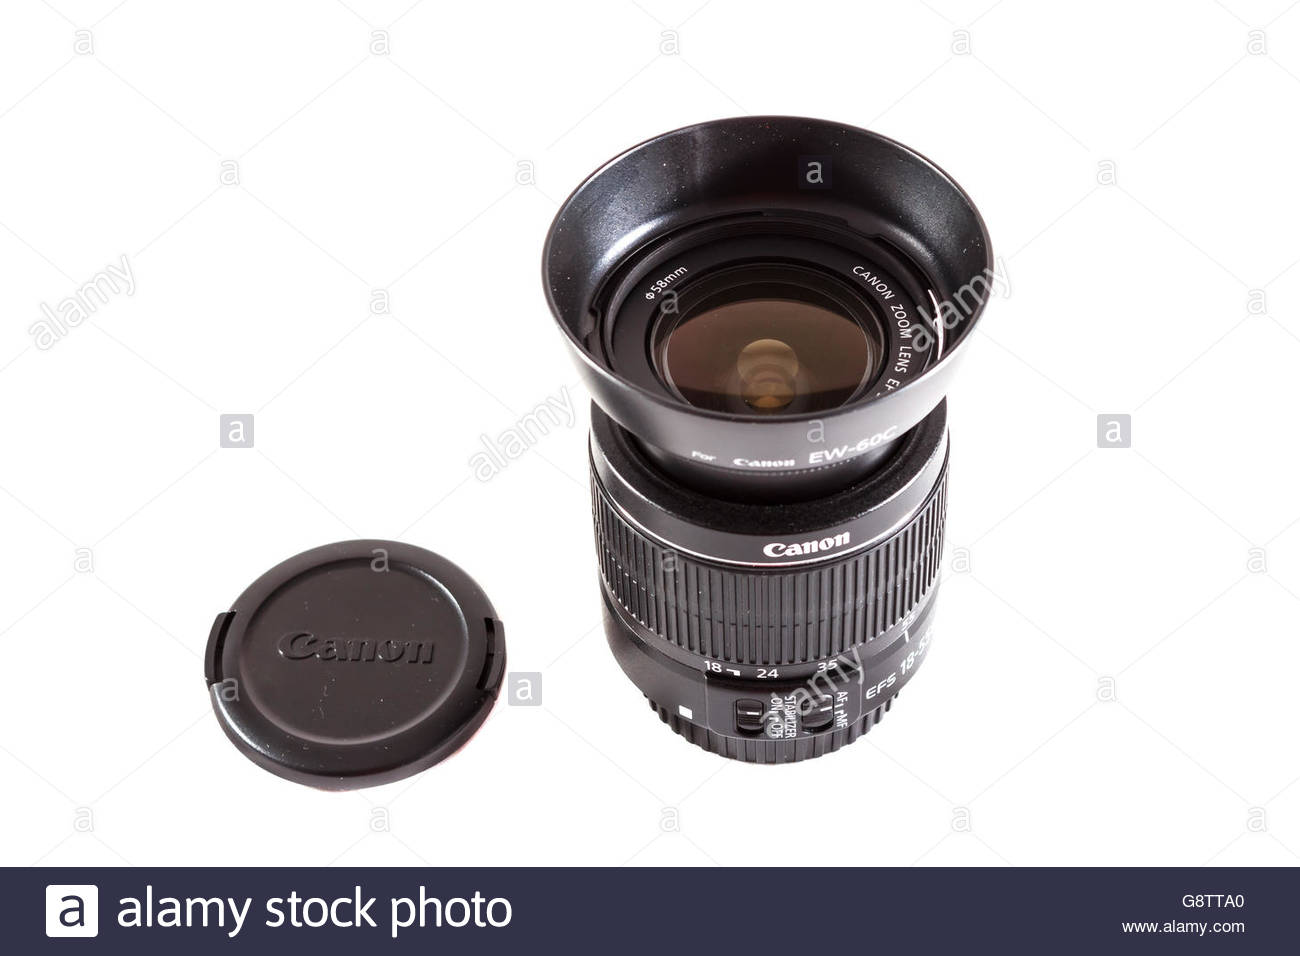 Canon EF-S 18-55mm f/3.5-5.6 IS II lens made by Canon inc. with lens hood Stock Photo